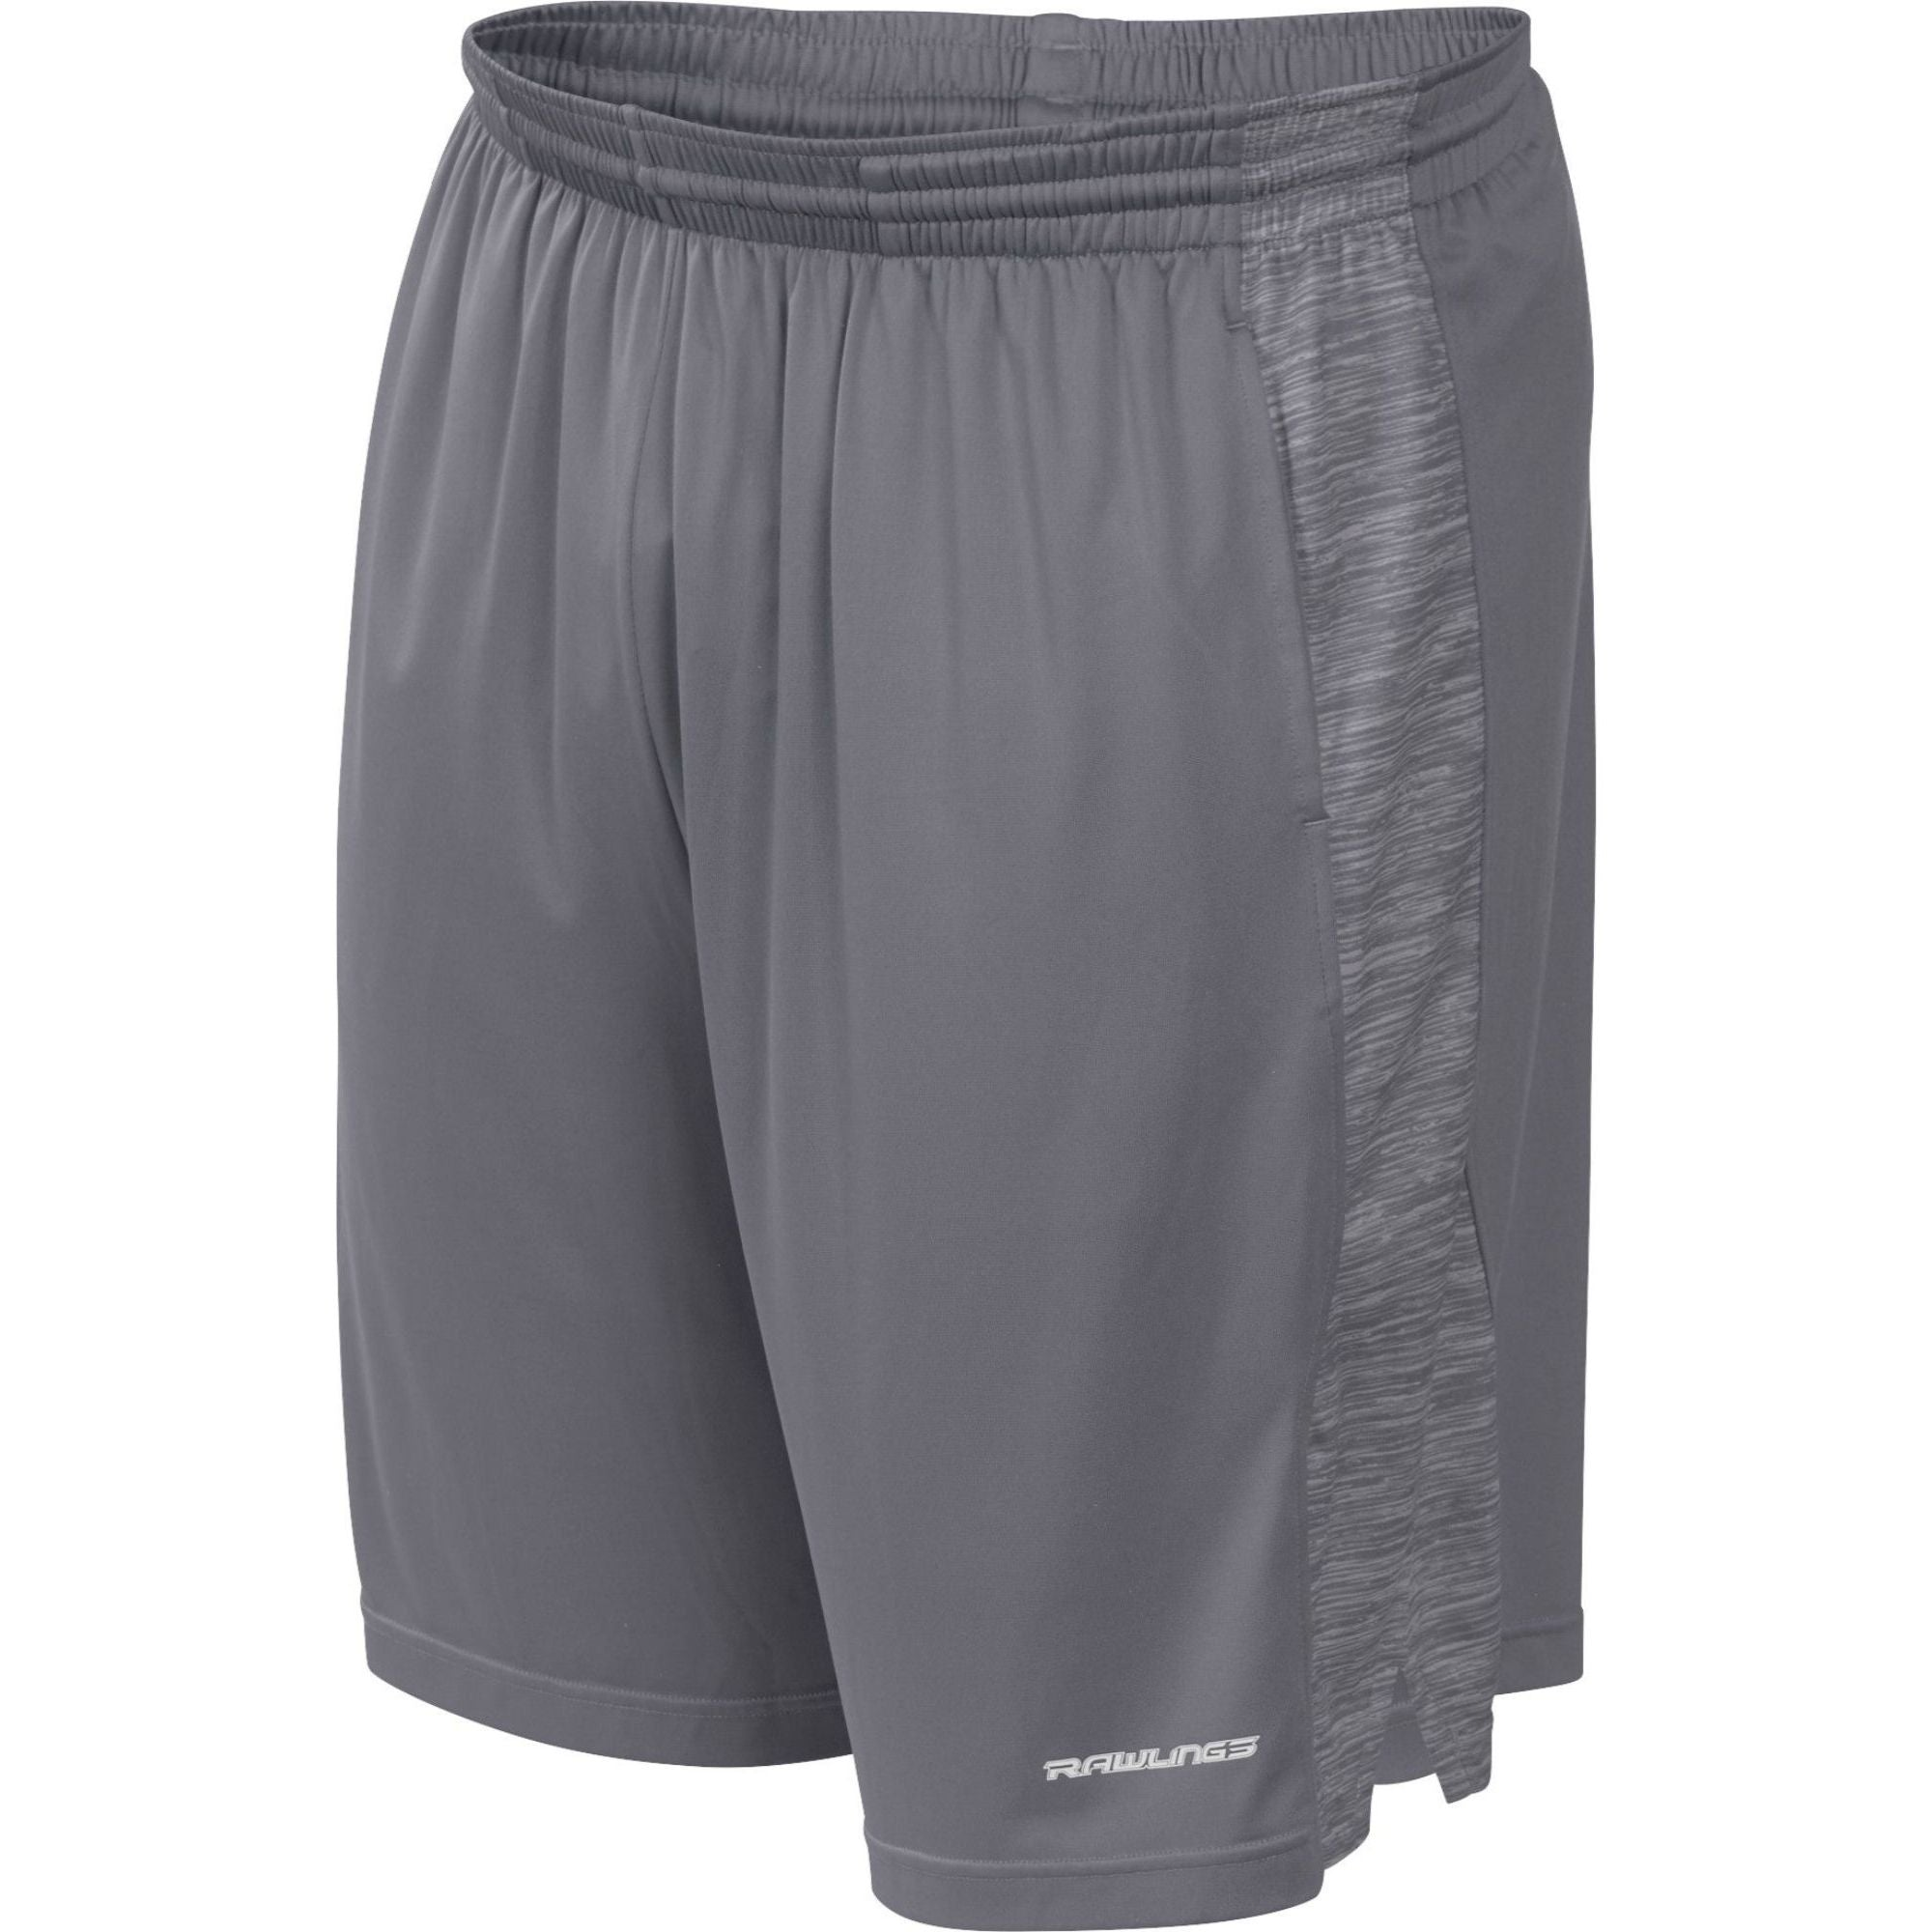 Rawlings Youth Launch Short Gray Small - Sports Butler